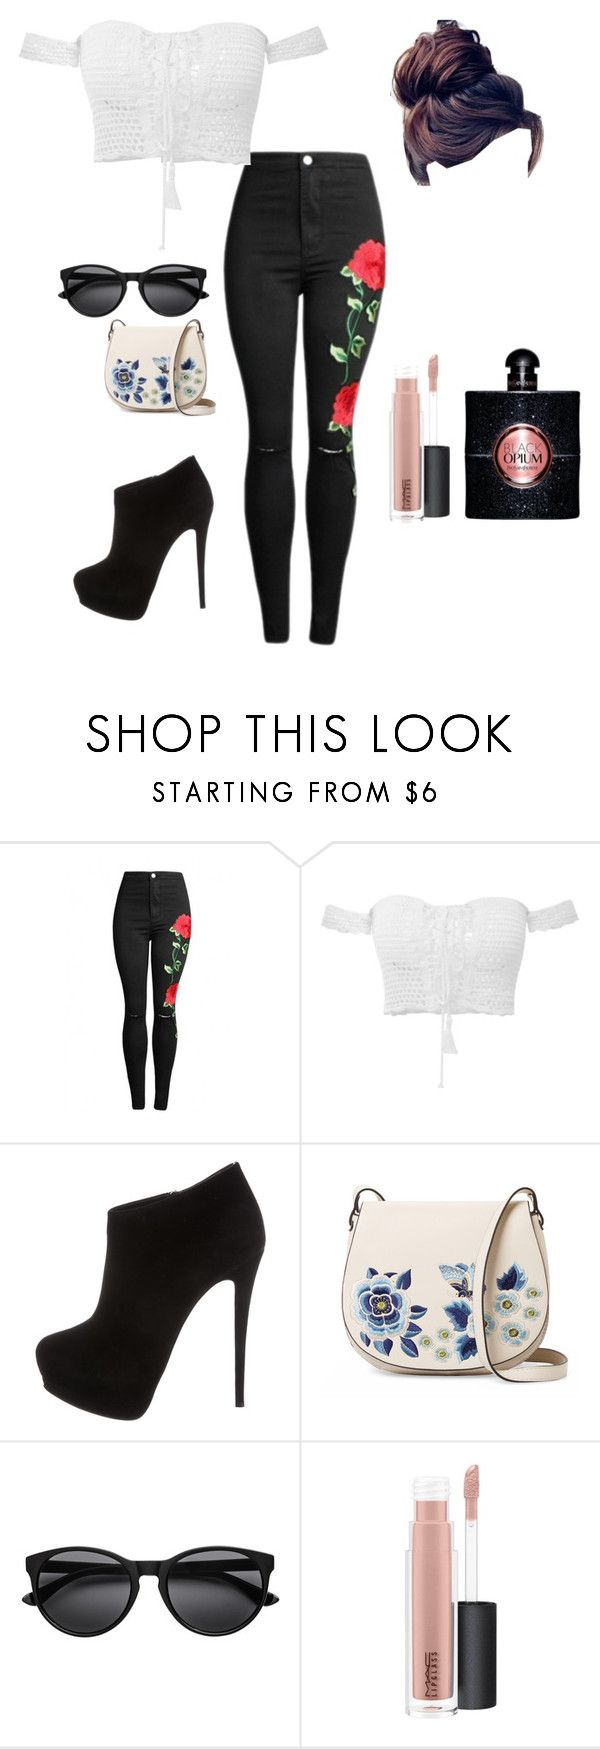 """Untitled #112"" by trinitymahomie on Polyvore featuring Giuseppe Zanotti, French Connection, MAC Cosmetics and Yves Saint Laurent"